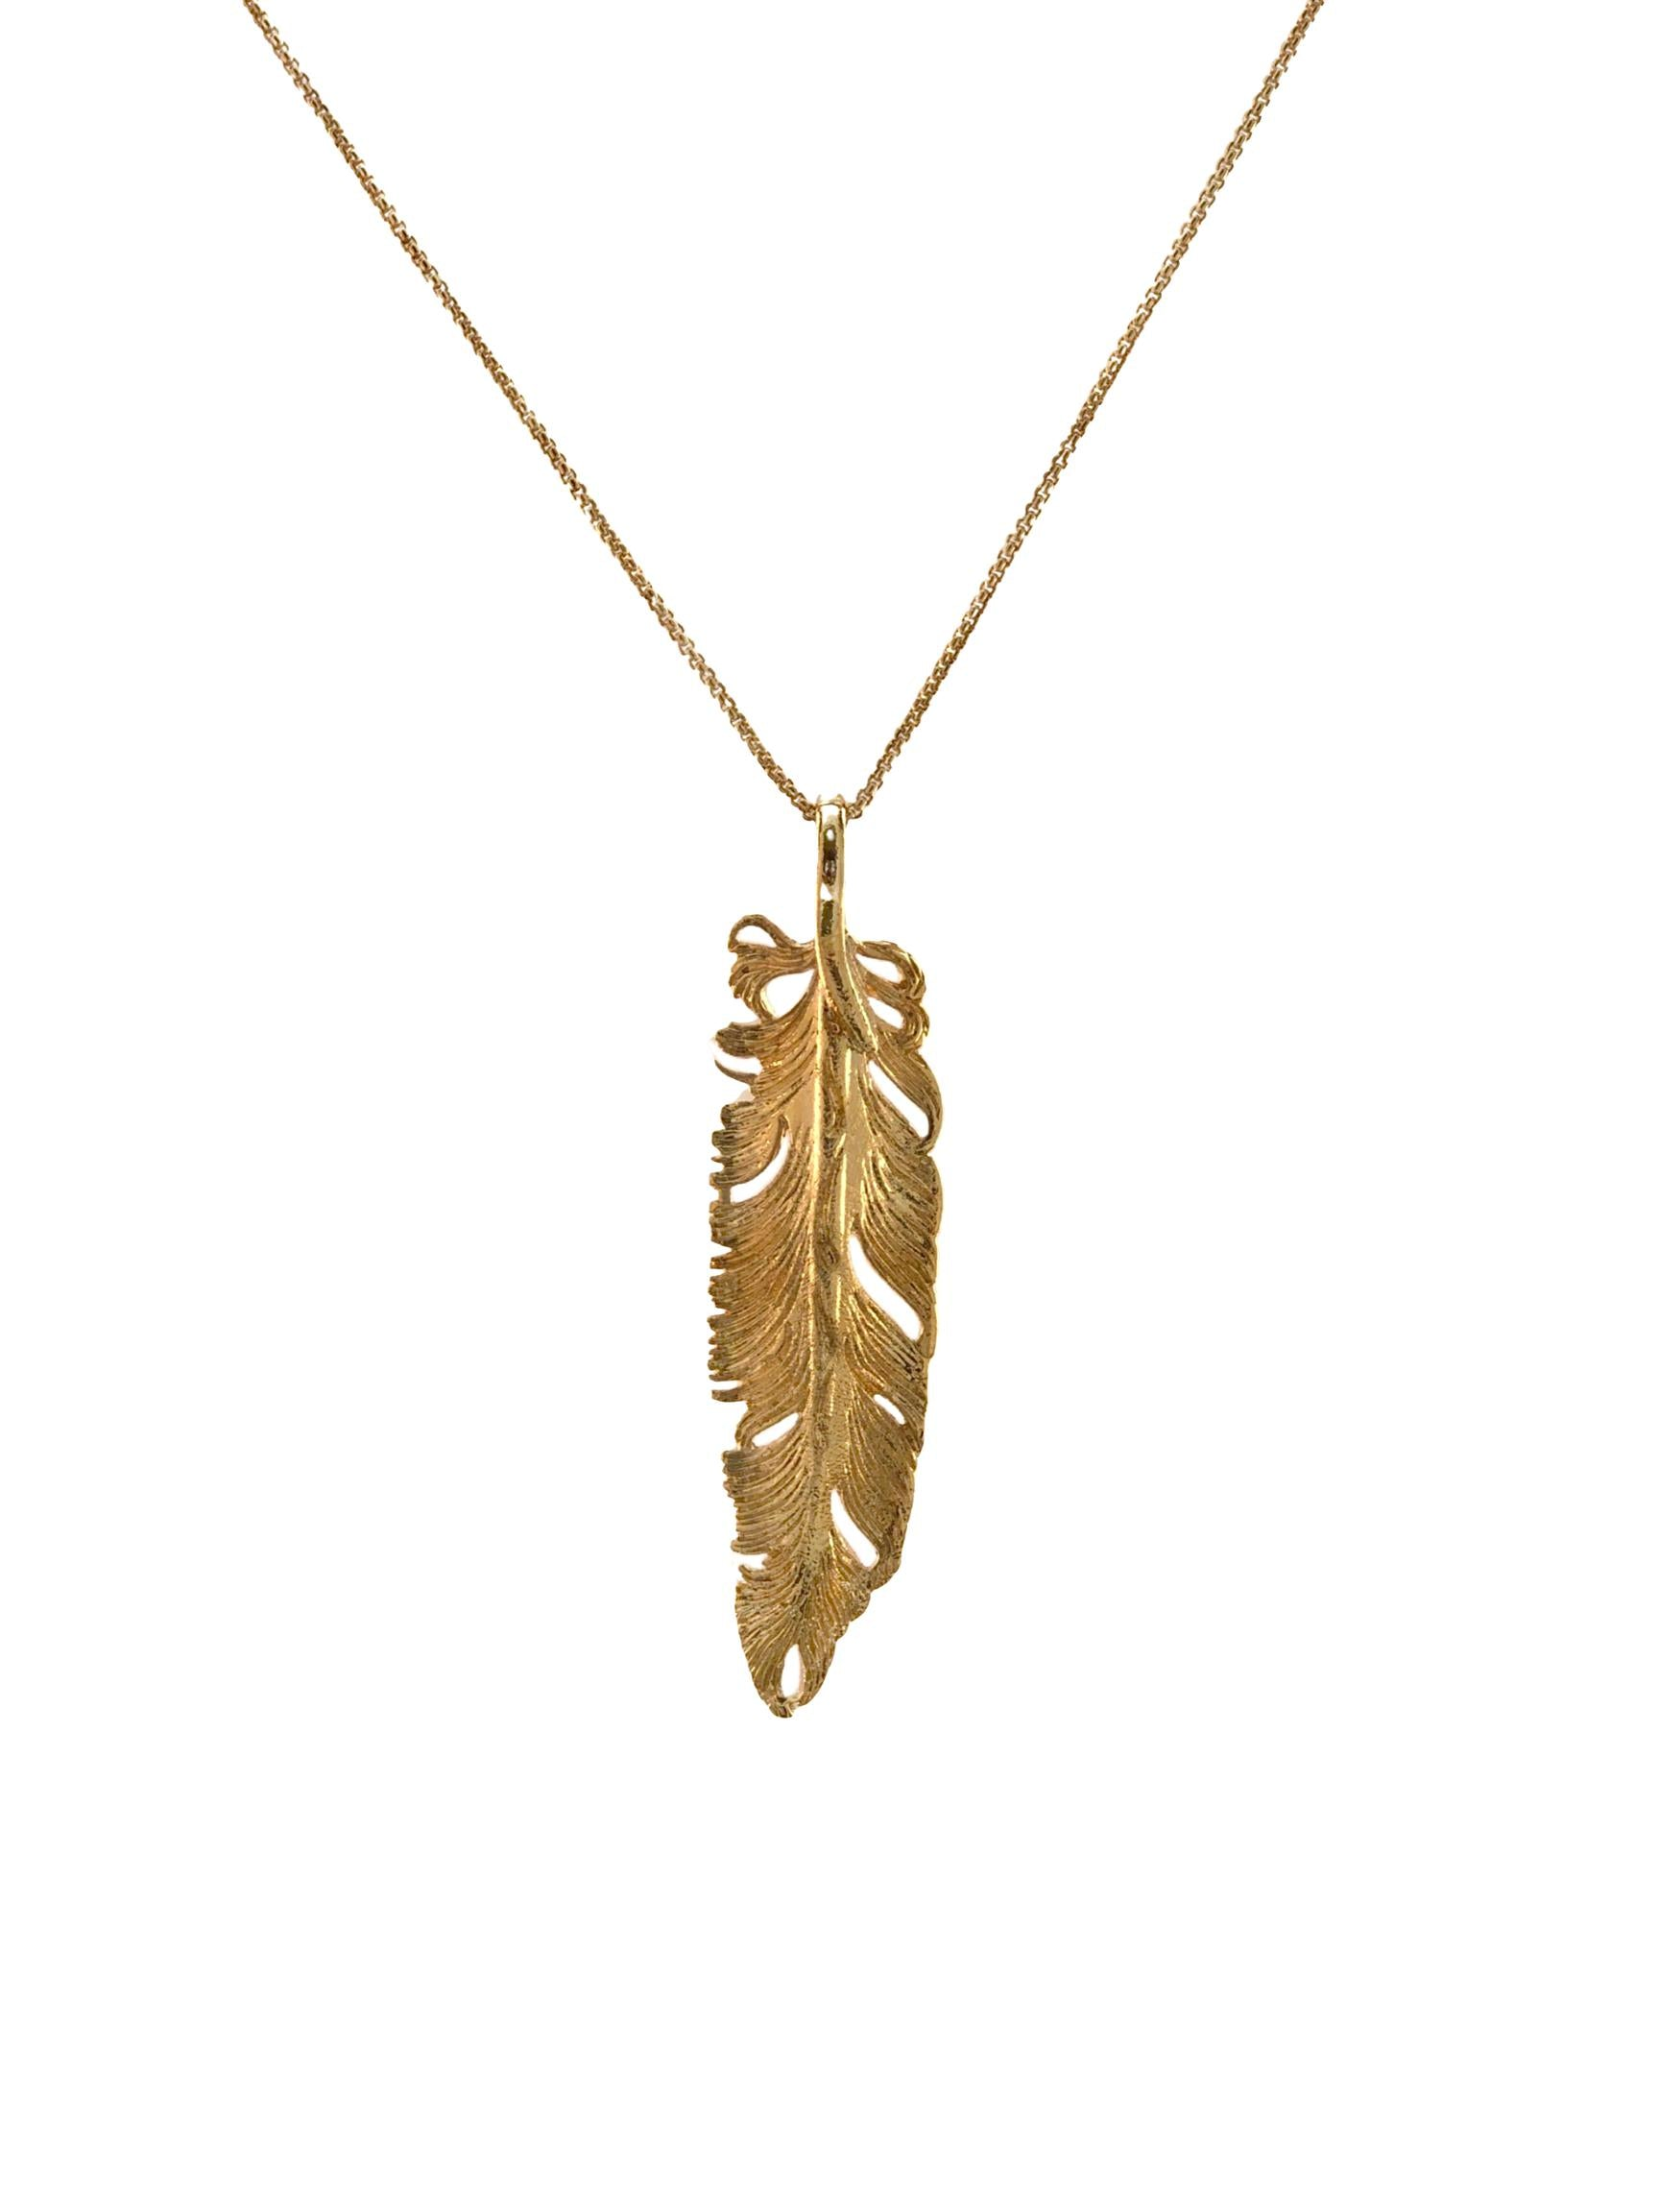 Gold Plume Pendant Charm-Pendant Charms-JAREDJAMIN Jewelry Online-JAREDJAMIN - Fashion Jewelry & Accessories